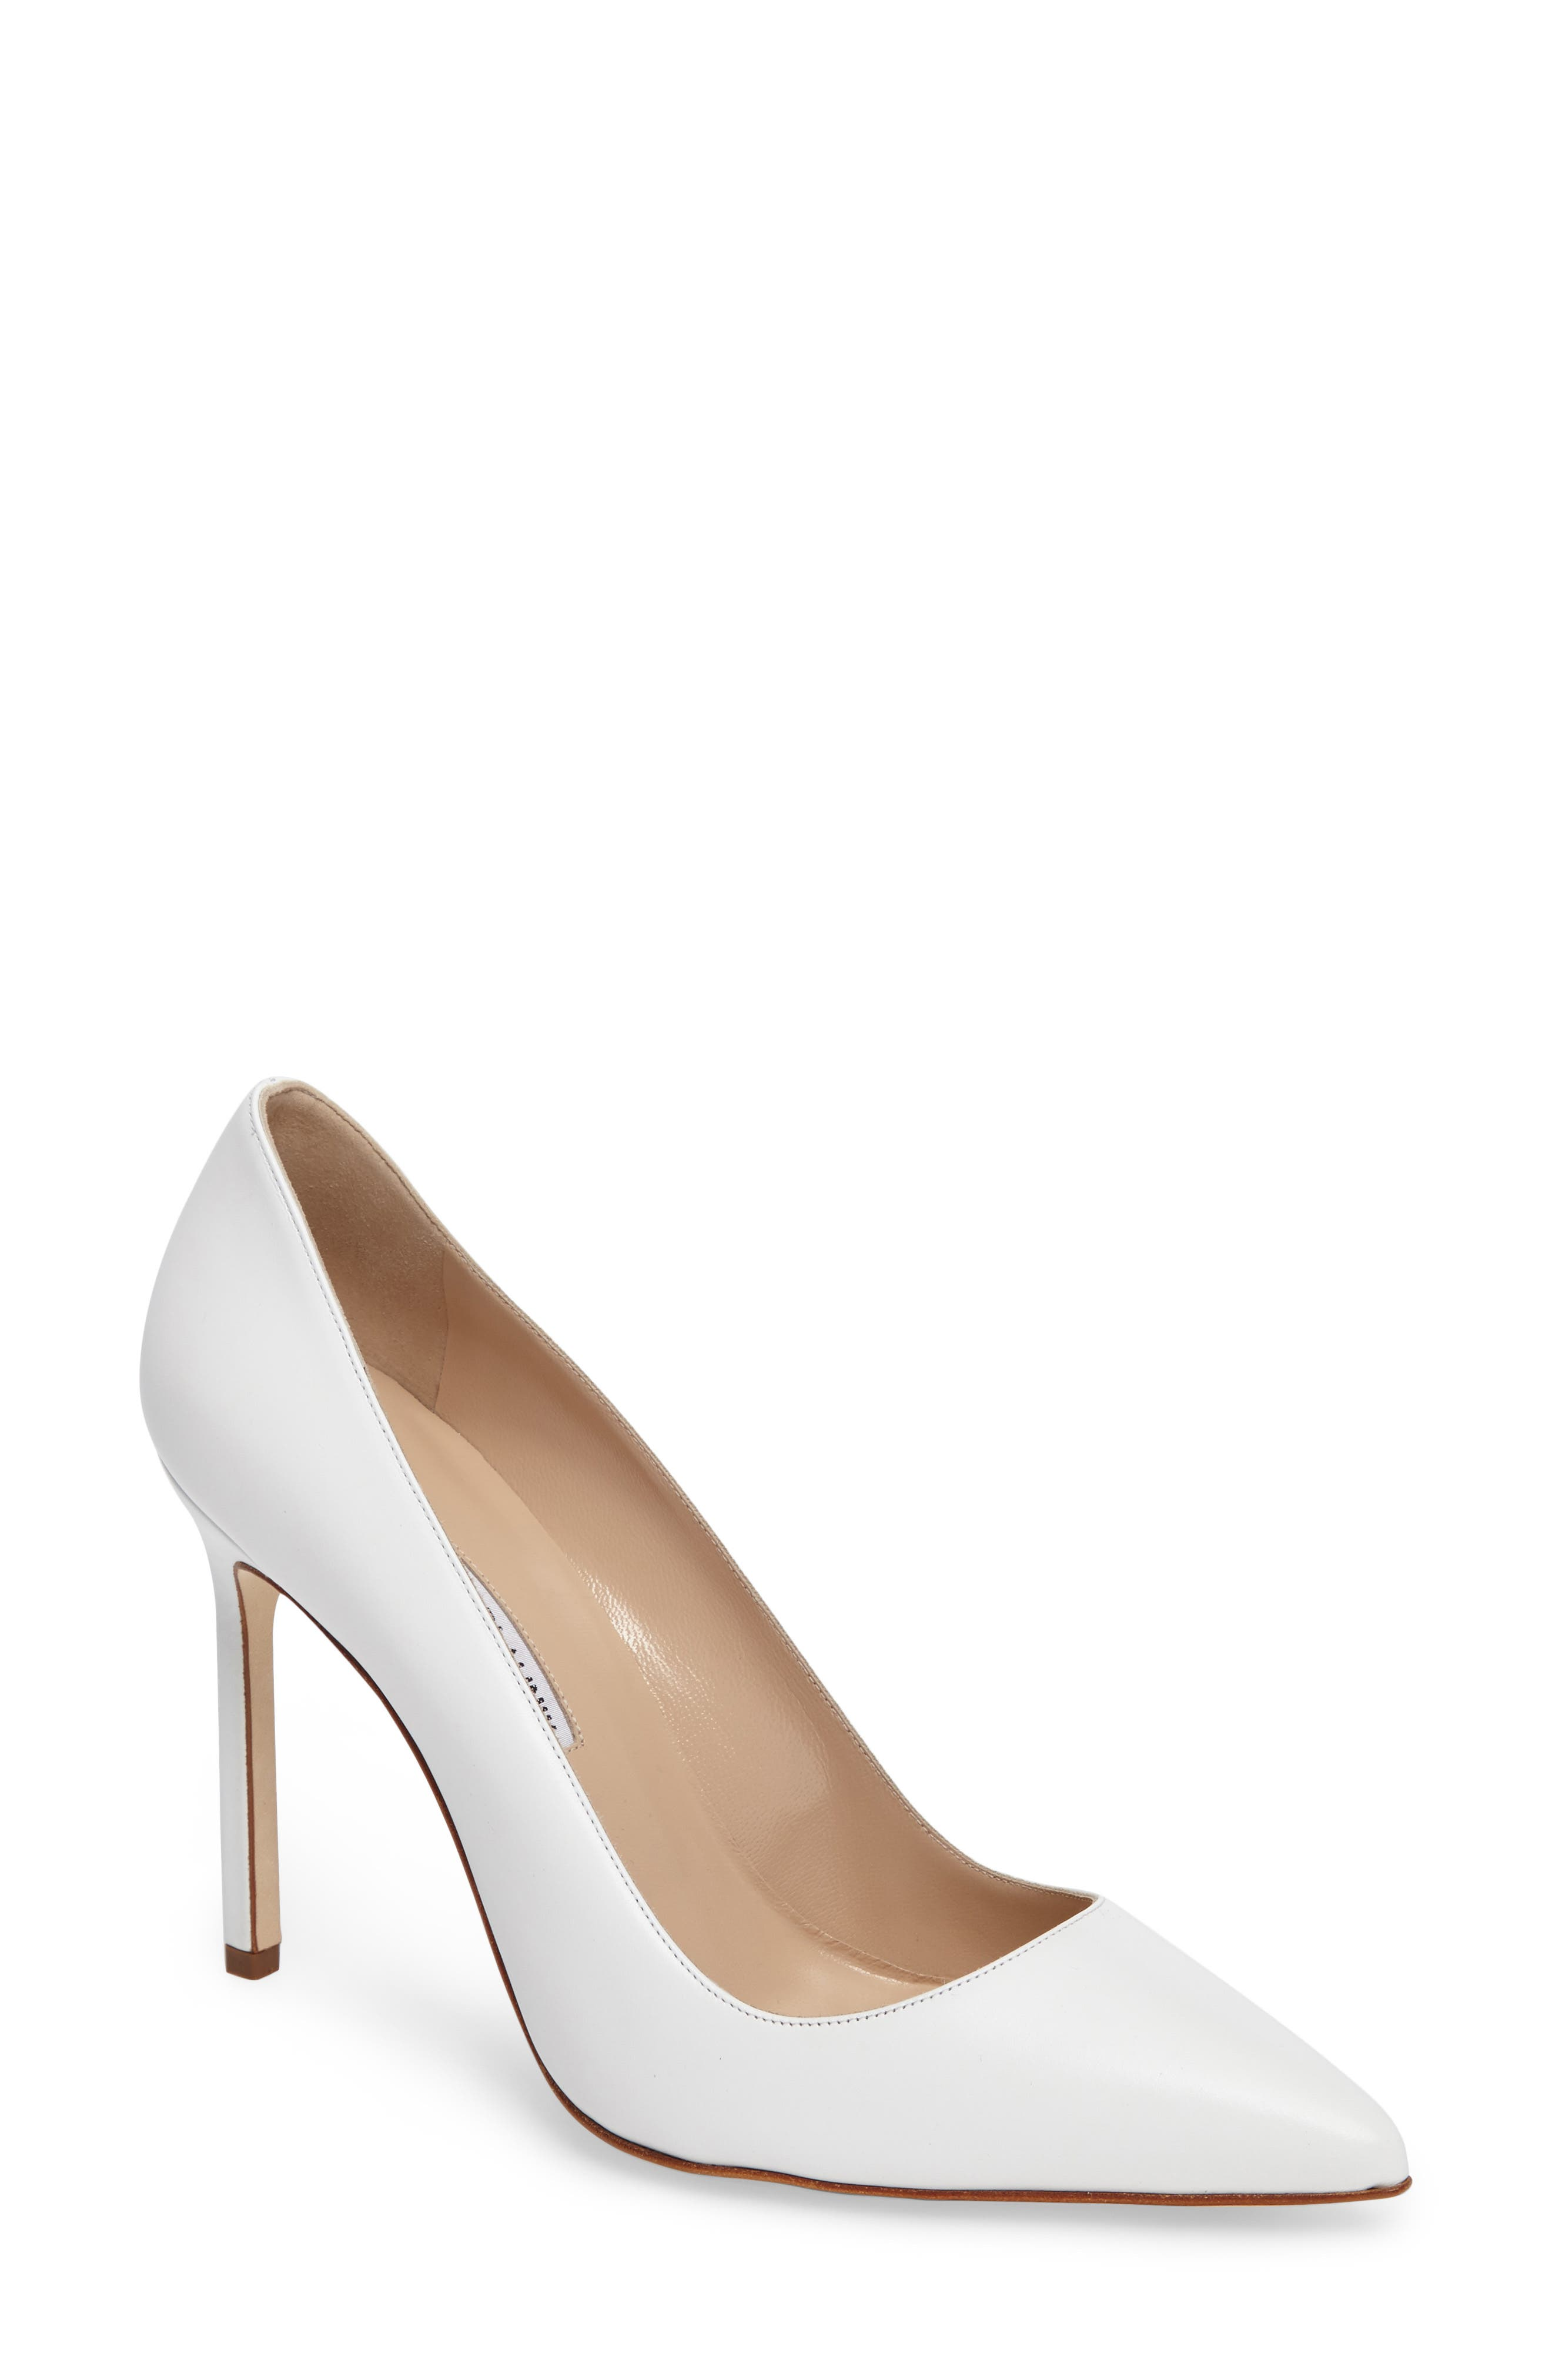 Alternate Image 1 Selected - Manolo Blahnik 'BB' Pointy Toe Pump (Women)